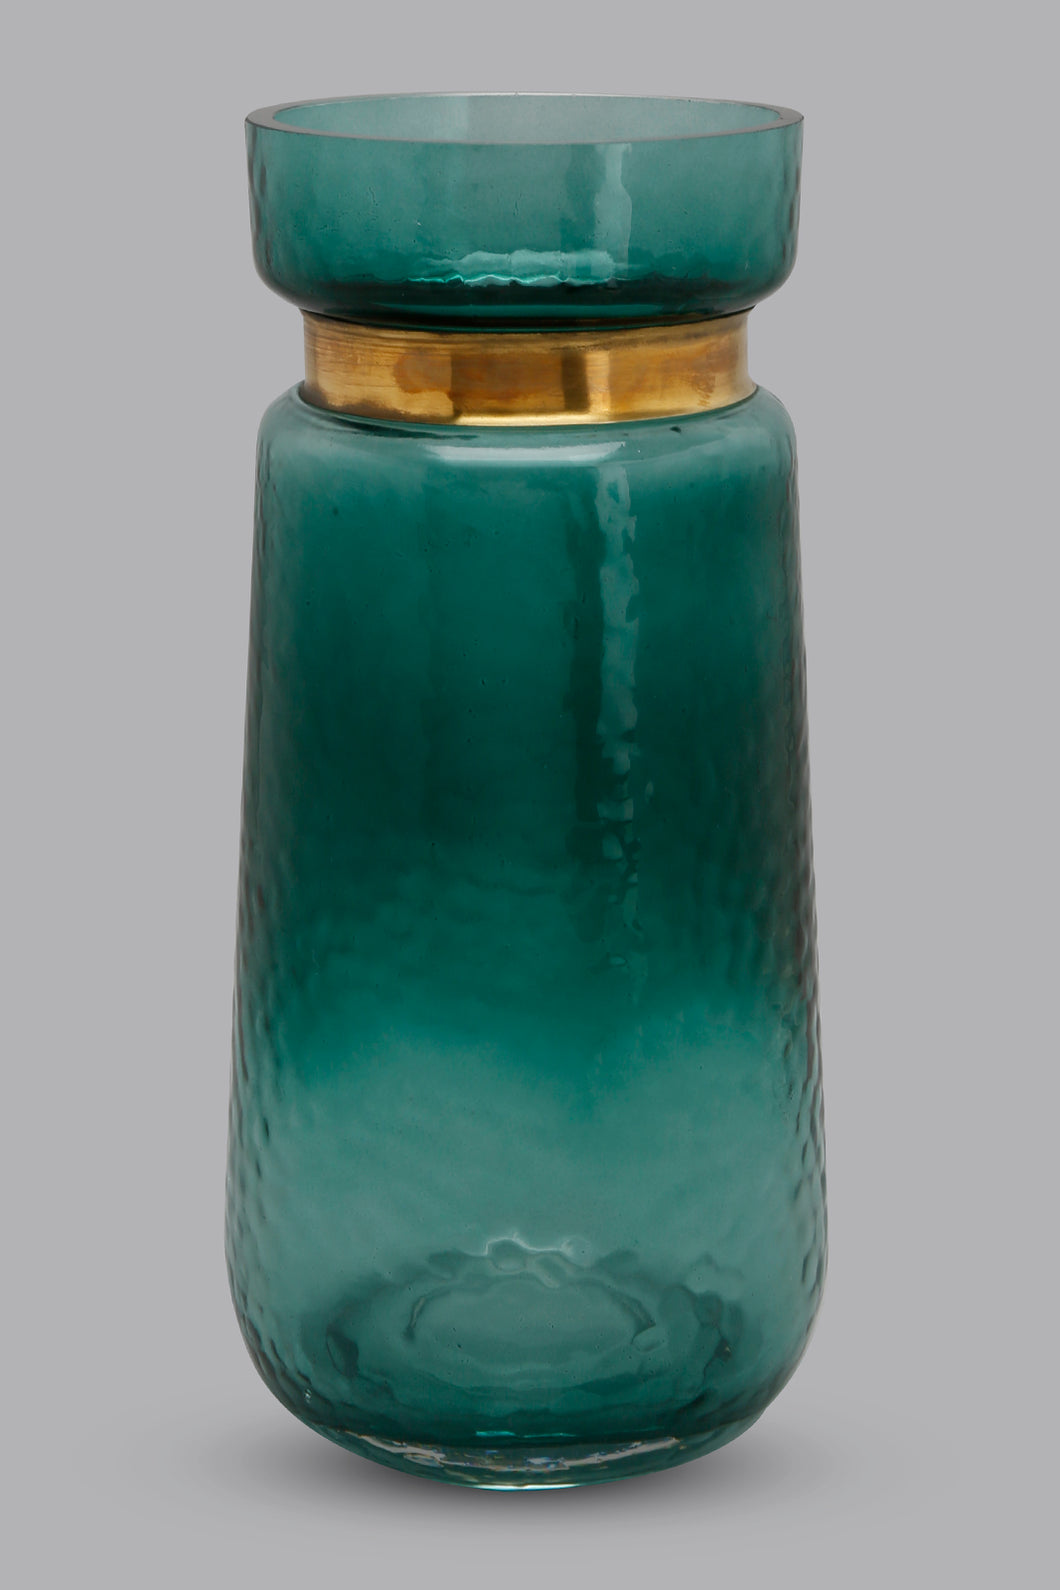 Teal Textured Glass Hurricane (Small)